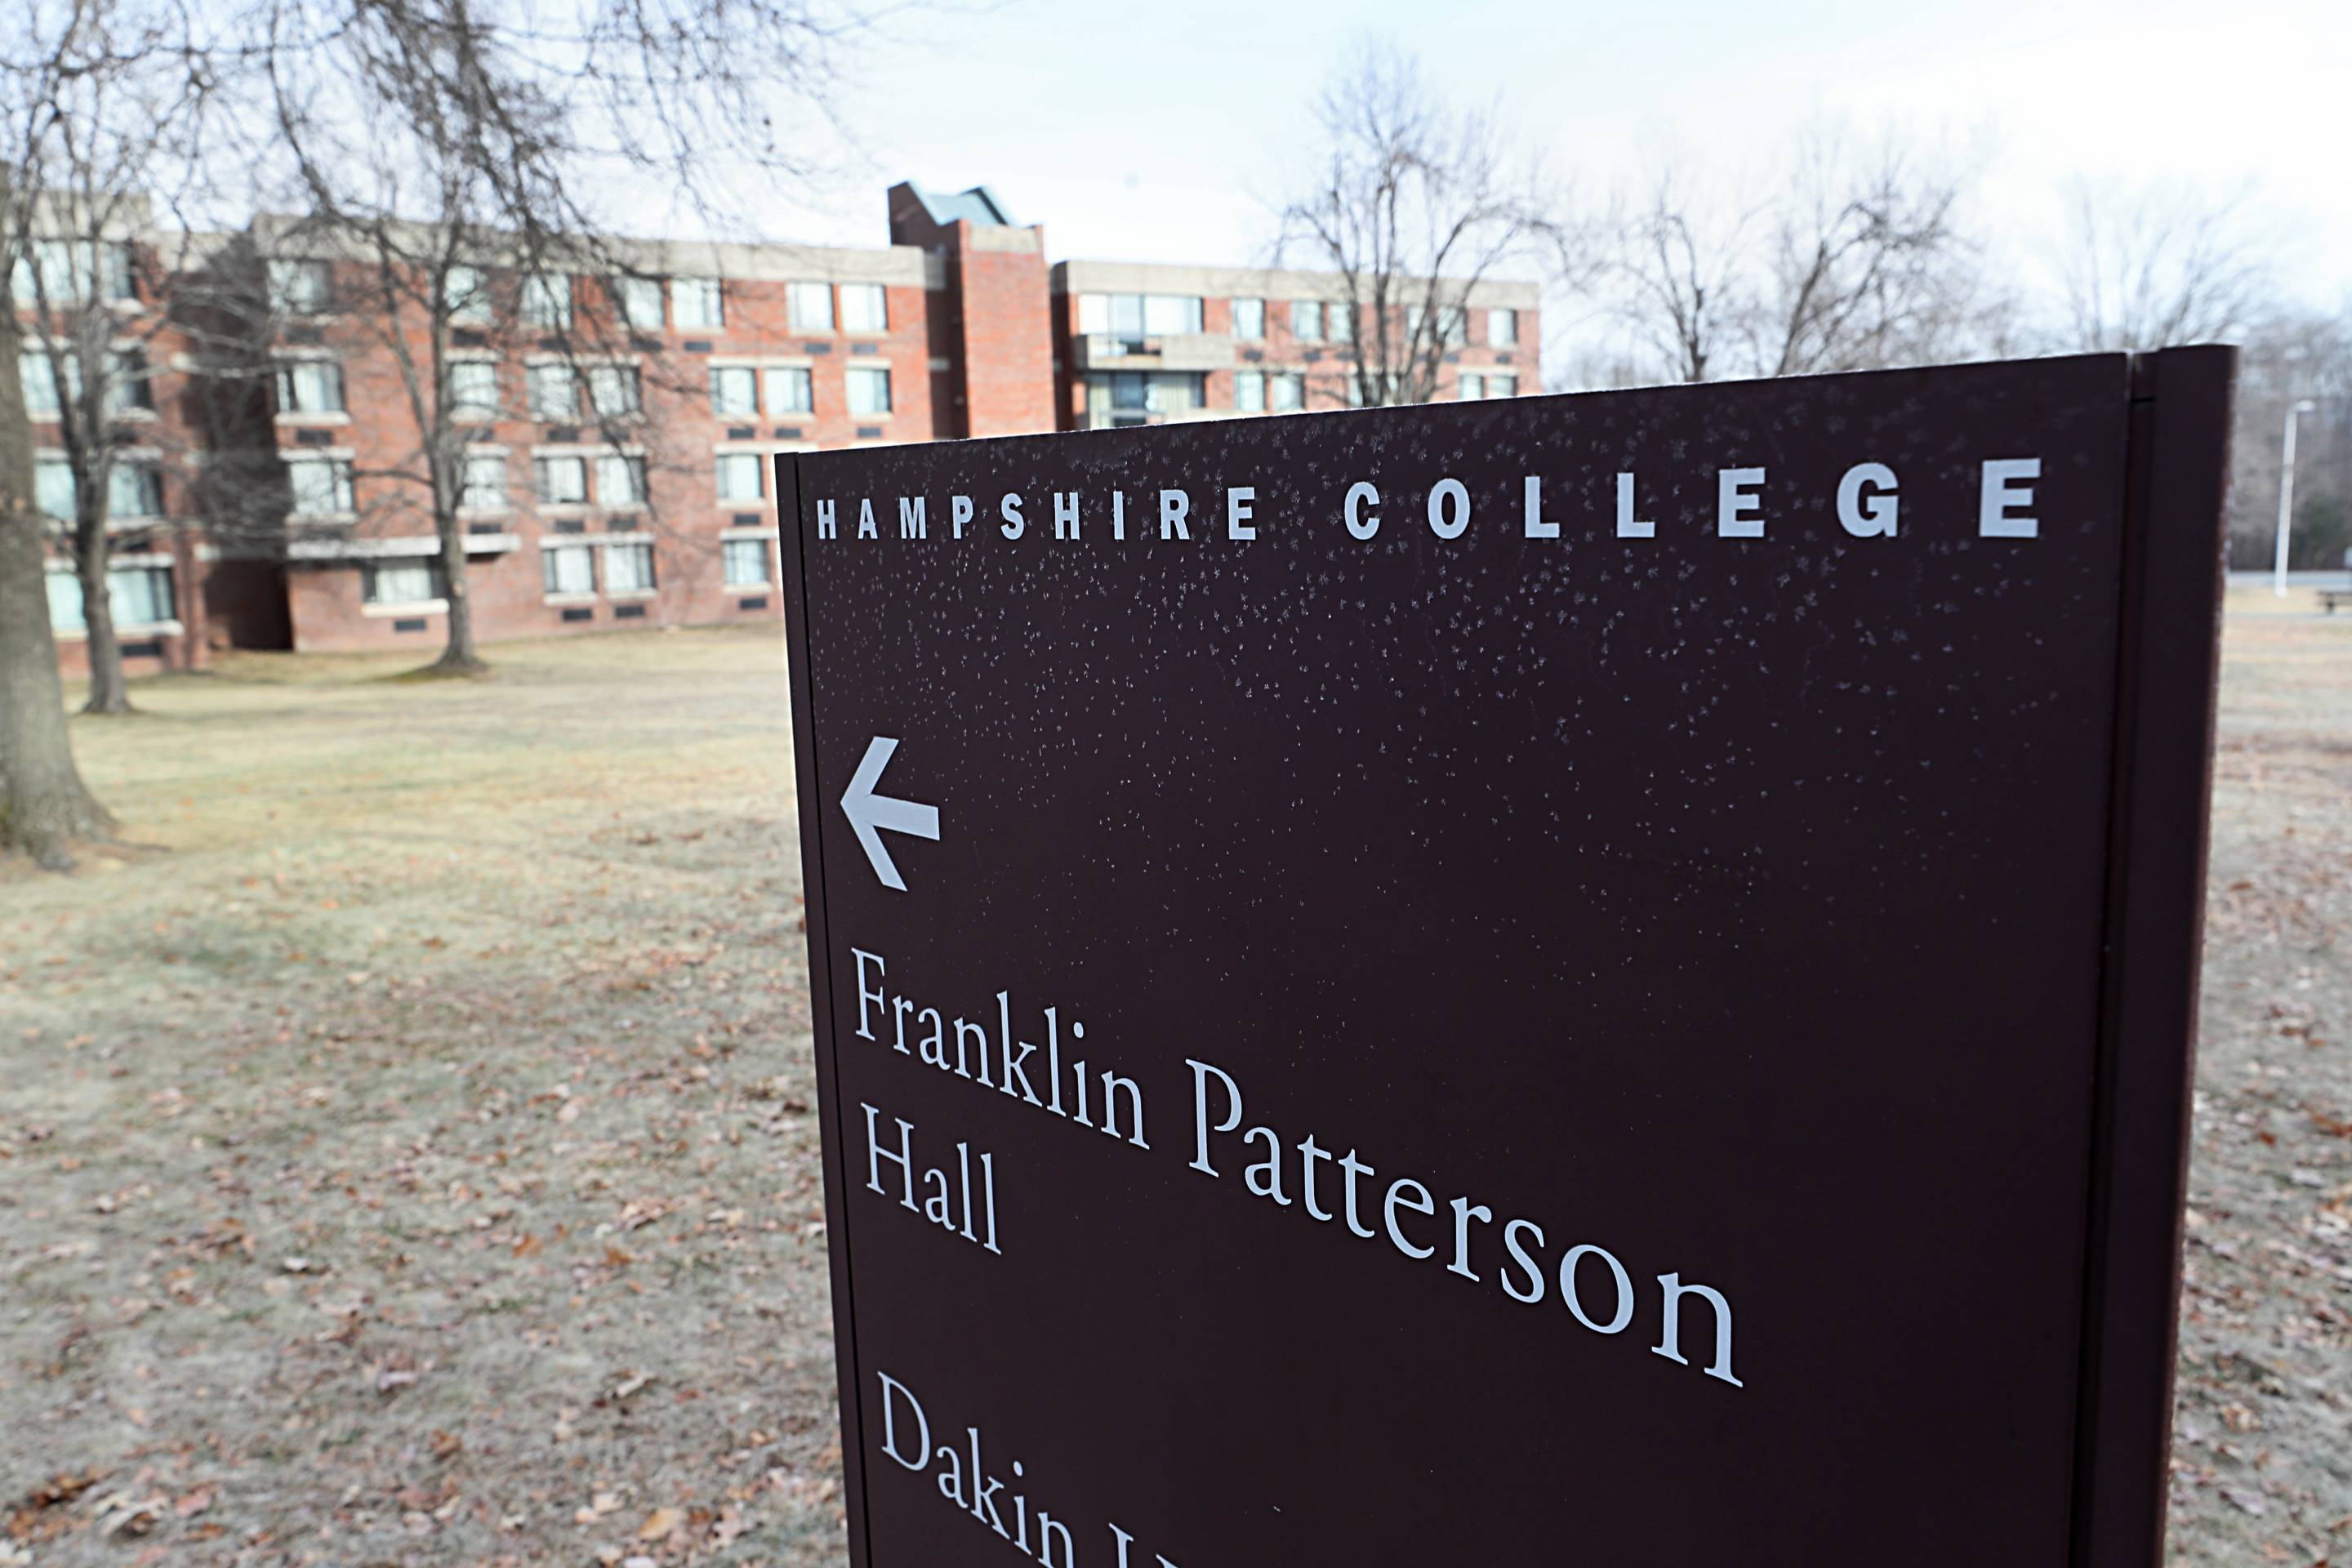 A sign on the campus of Hampshire College is pictured on Jan. 15, 2019.